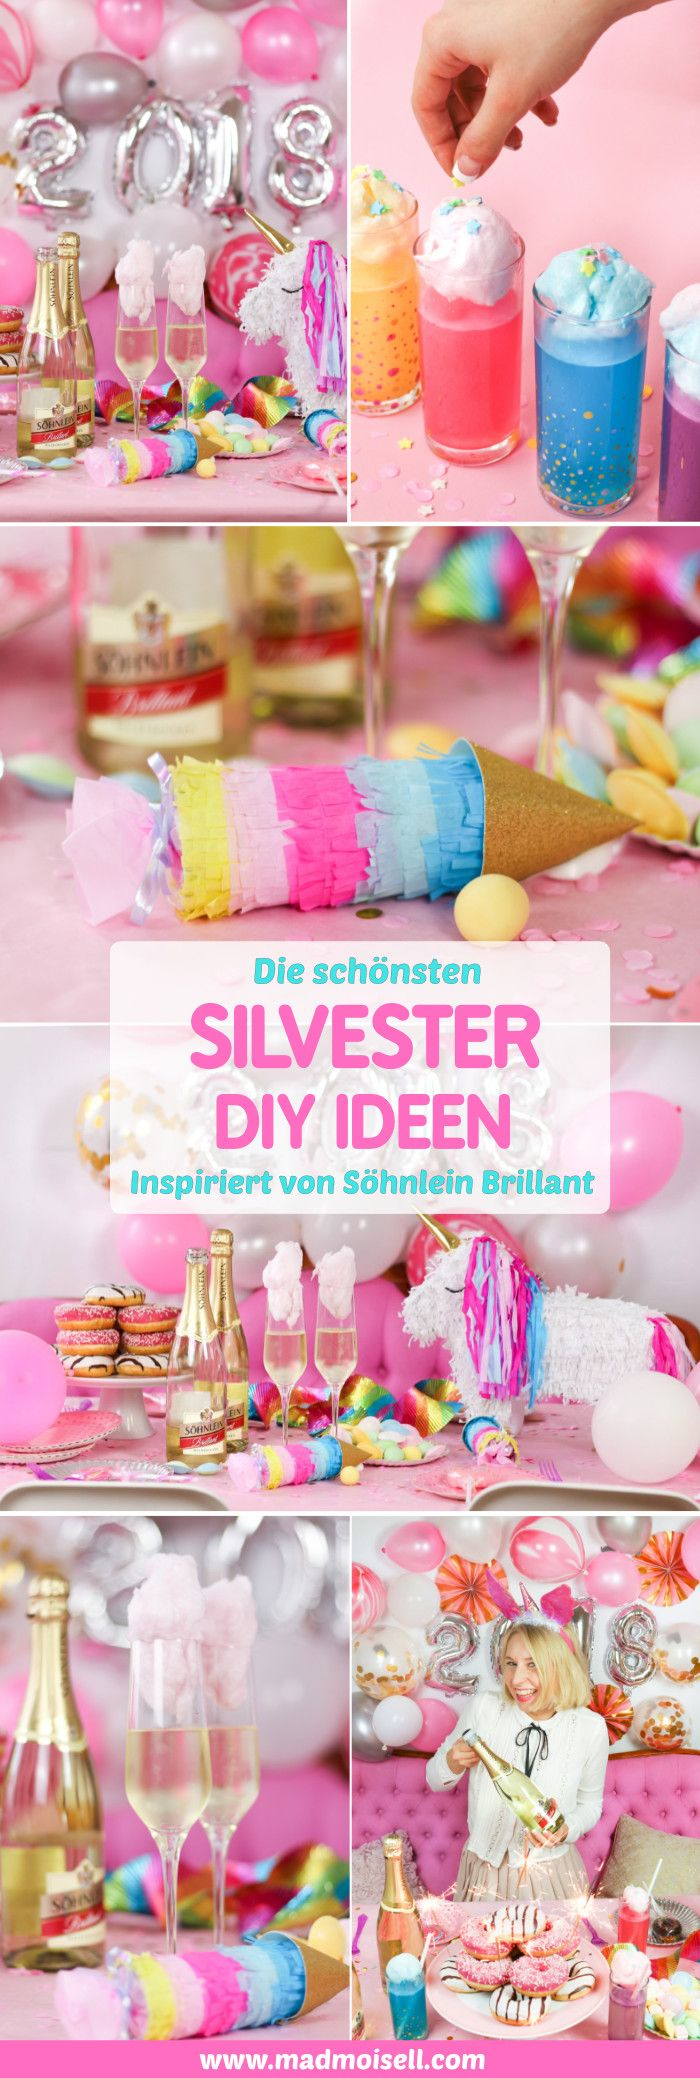 candy cotton drinks rezept geniale silvester party deko diy ideen diy basteln selbermachen. Black Bedroom Furniture Sets. Home Design Ideas